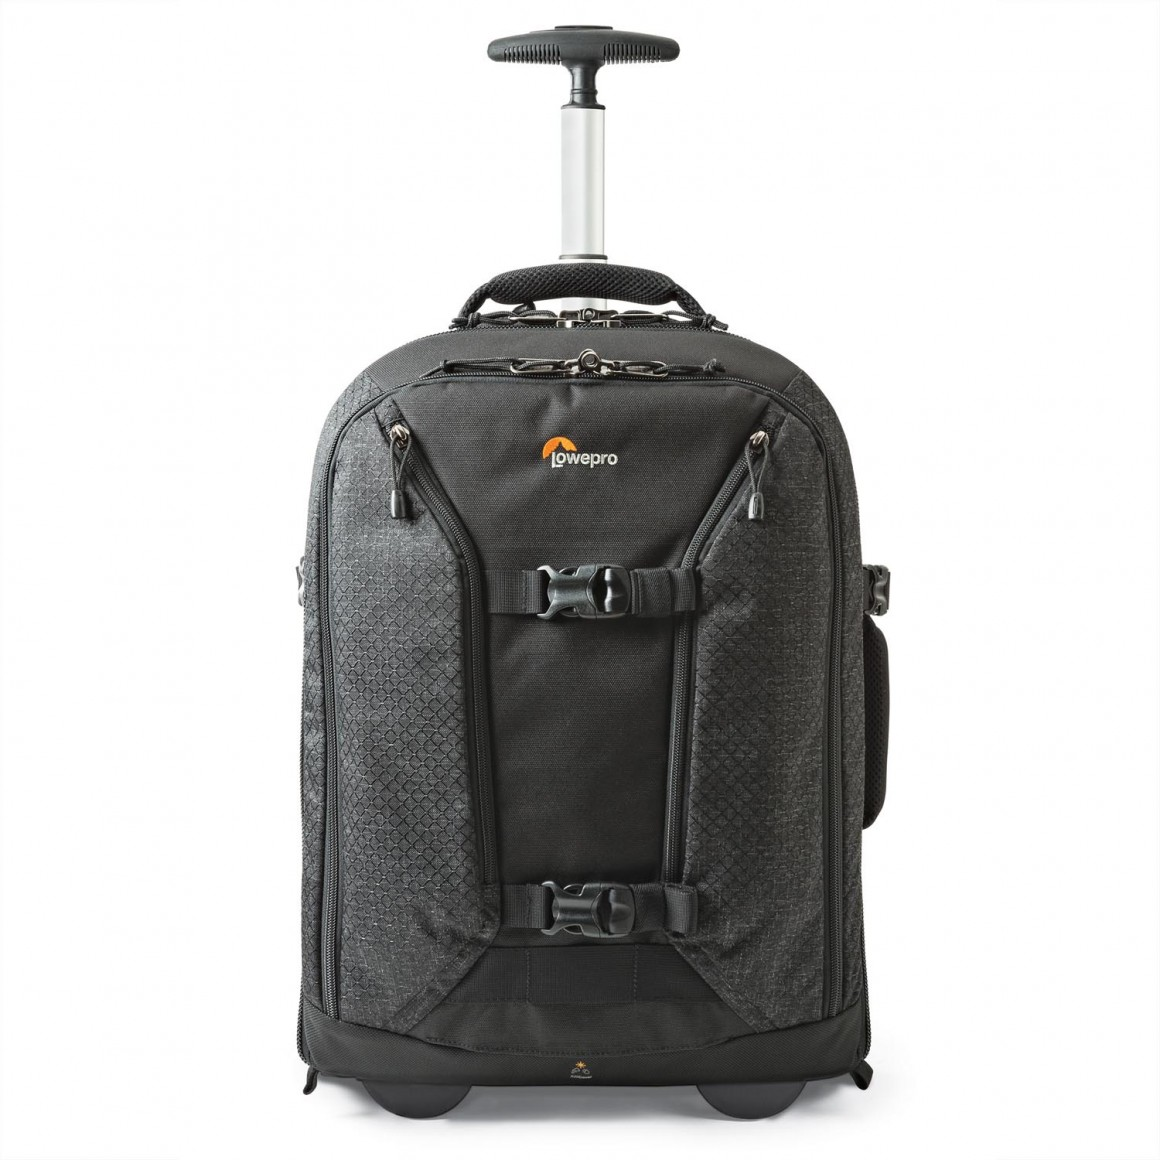 55 Aw Ii Available Via Shop The Entire Internet At Lowepro Toploader Zoom 50 Blue Pro Runner X450 Black